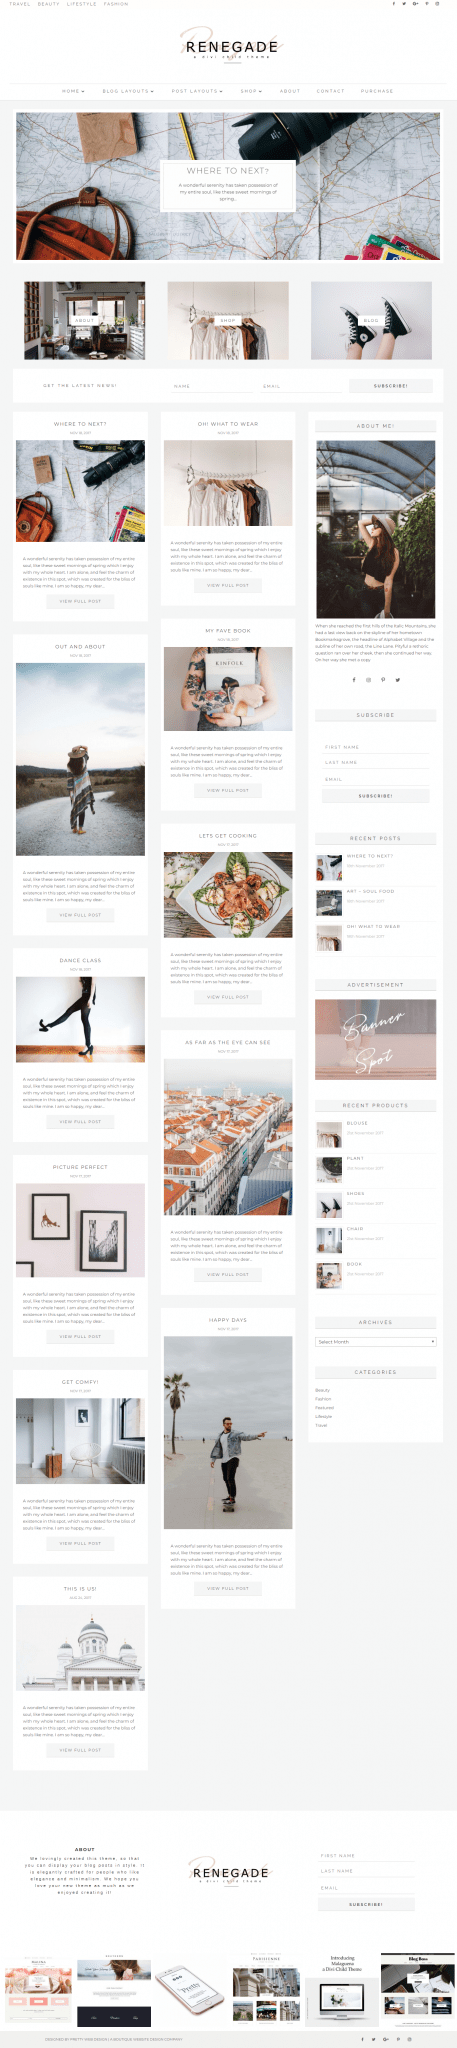 Divi child theme layouts I Feminine WordPress themes I Divi child themes for the bloggers. Feminine Divi WordPress themes for photographers, weddings Divi Child Themes for the Divi theme